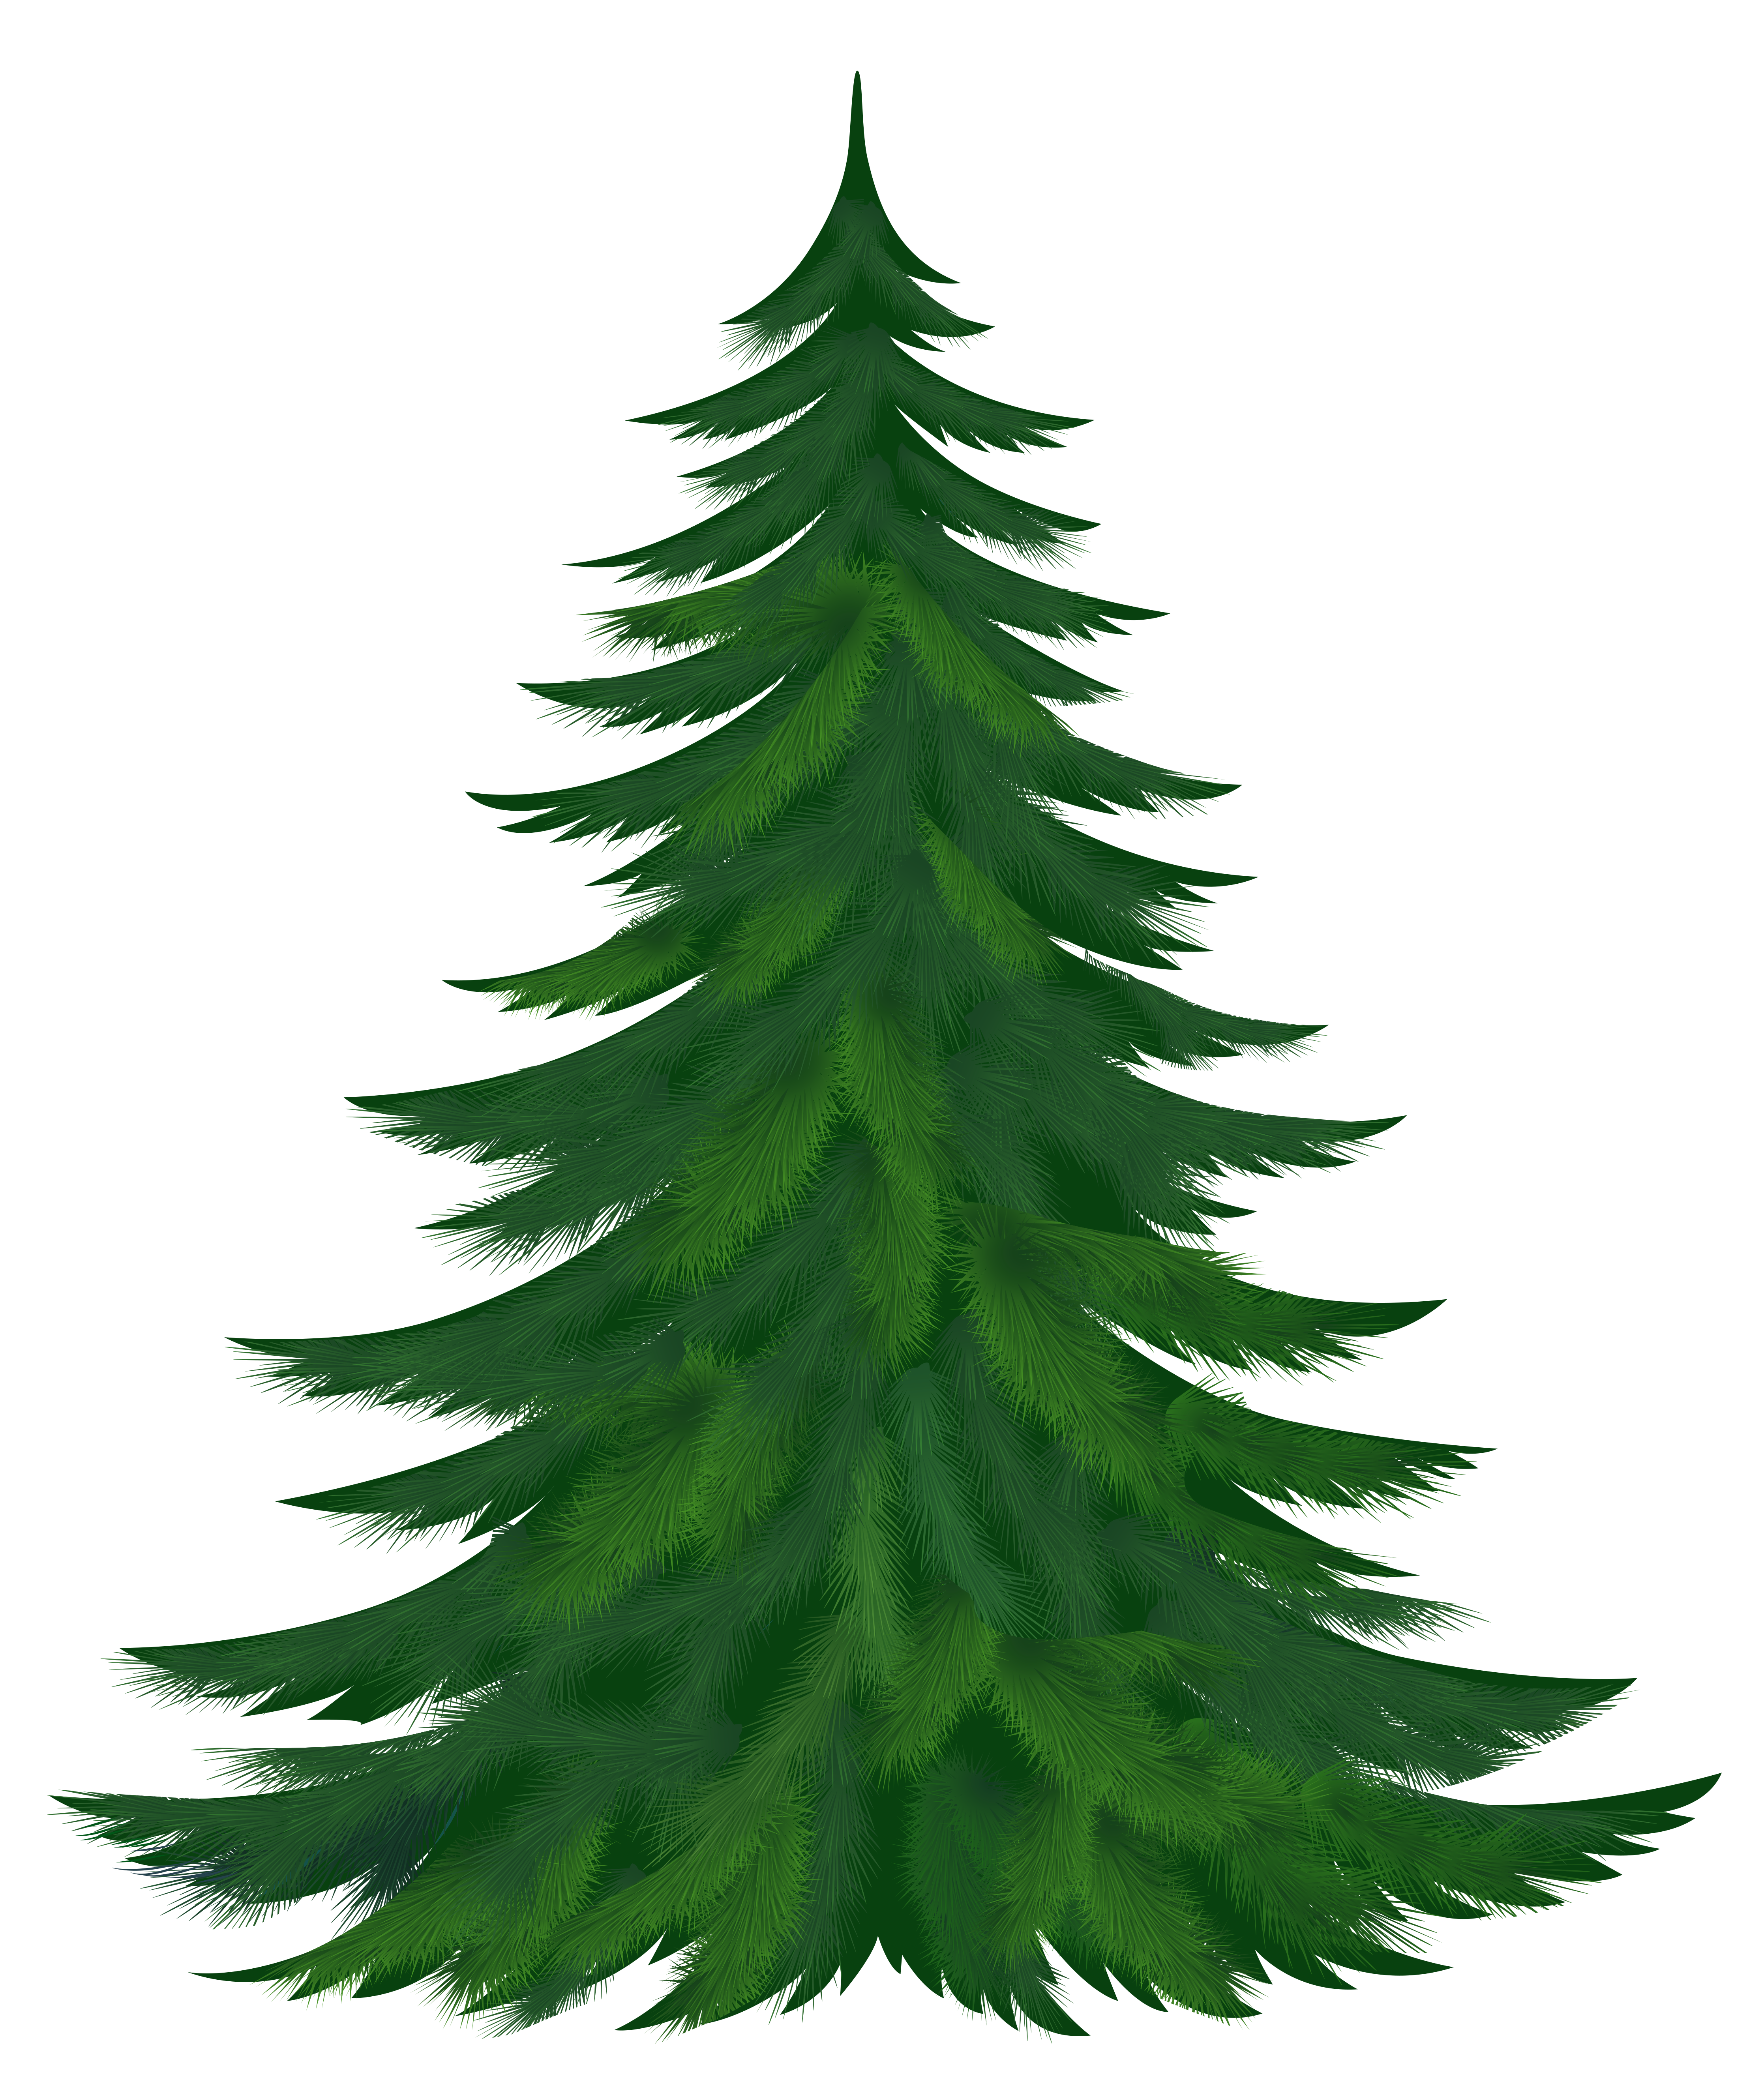 Transparent tree picture gallery. Pine trees clipart png png royalty free library